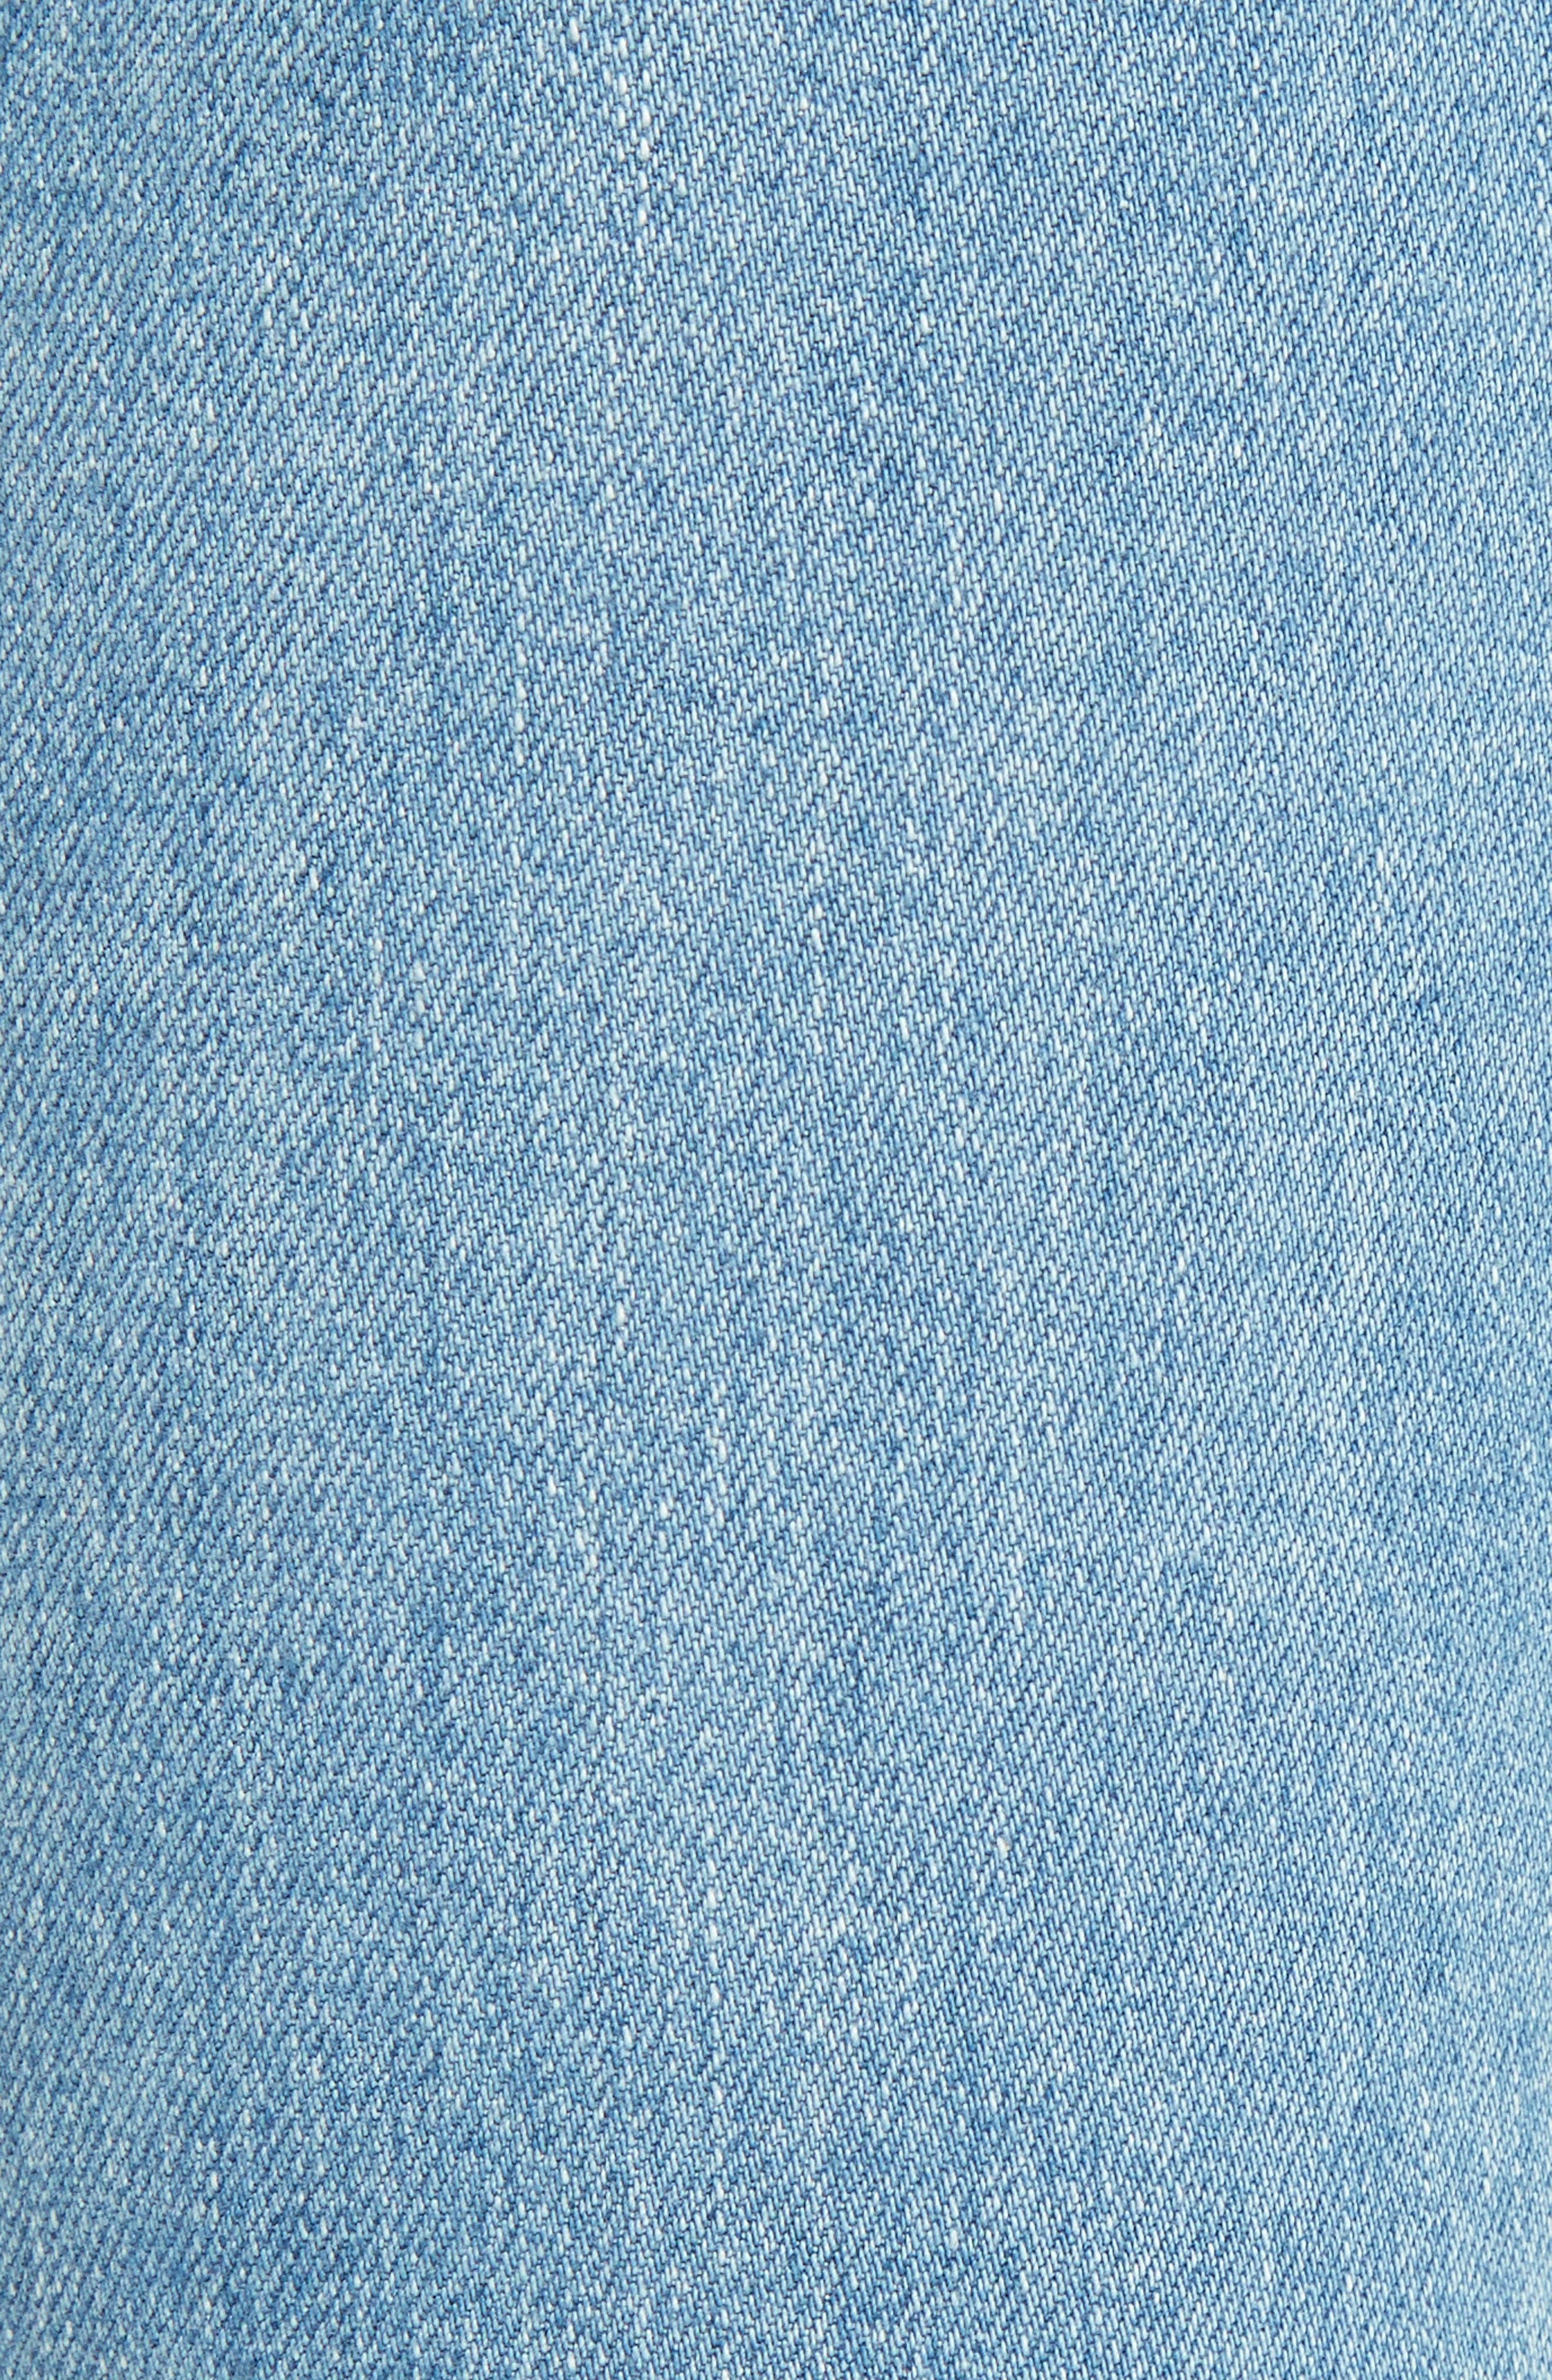 Alternate Image 5  - See by Chloé Iconic Ankle Flare Jeans (Stoned Indigo)